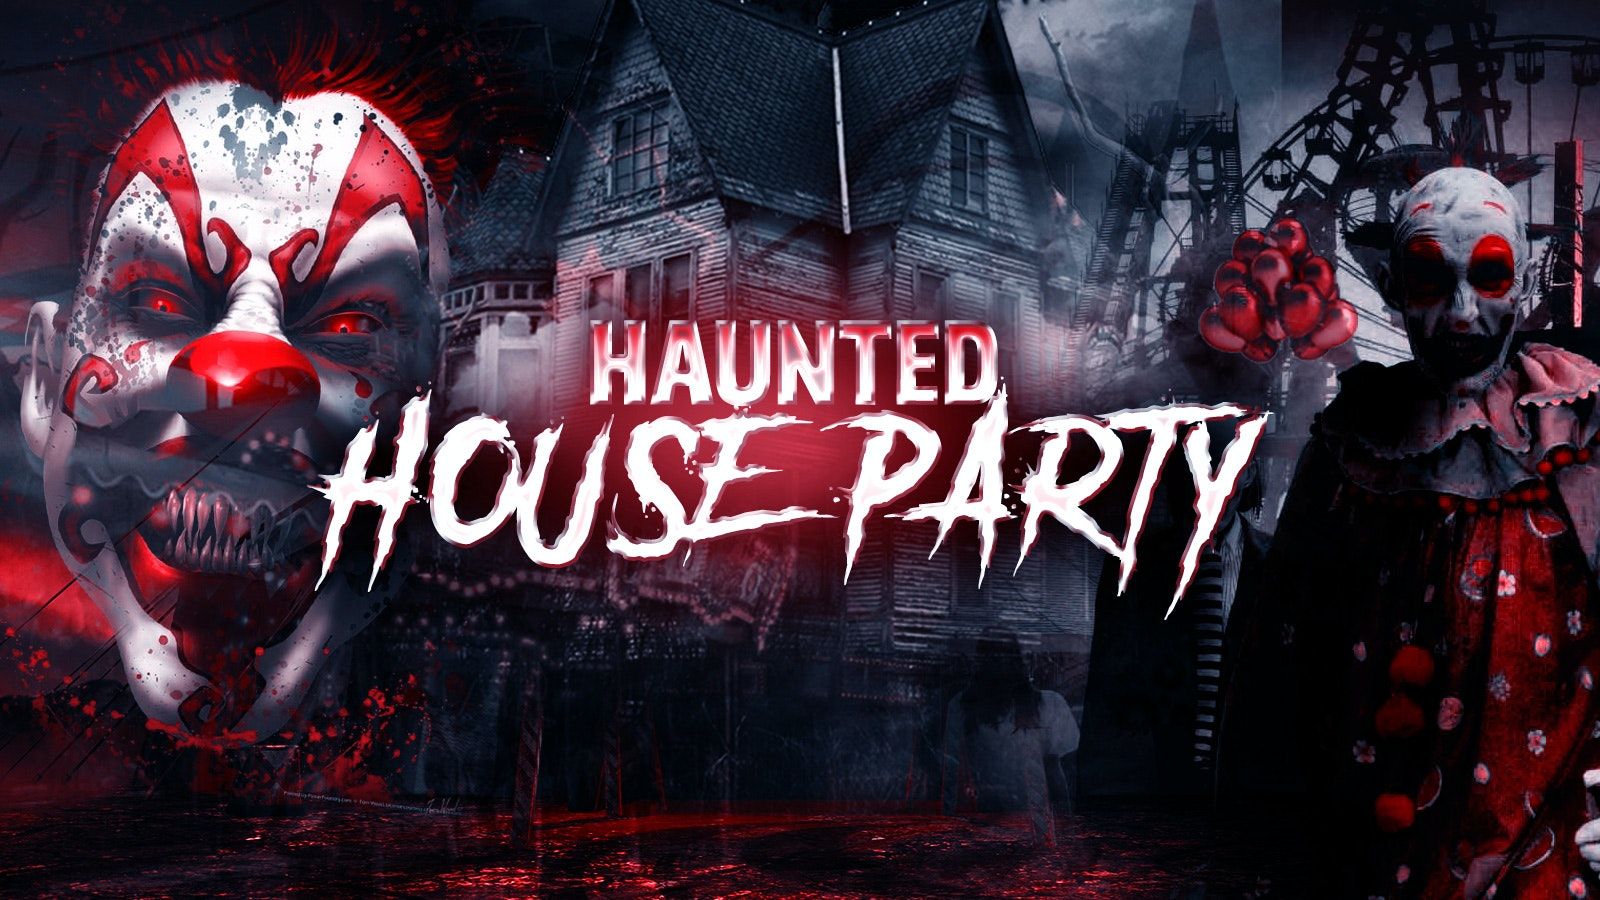 The Haunted House Party | Sheffield Halloween 2021 – First 300 Tickets £1!